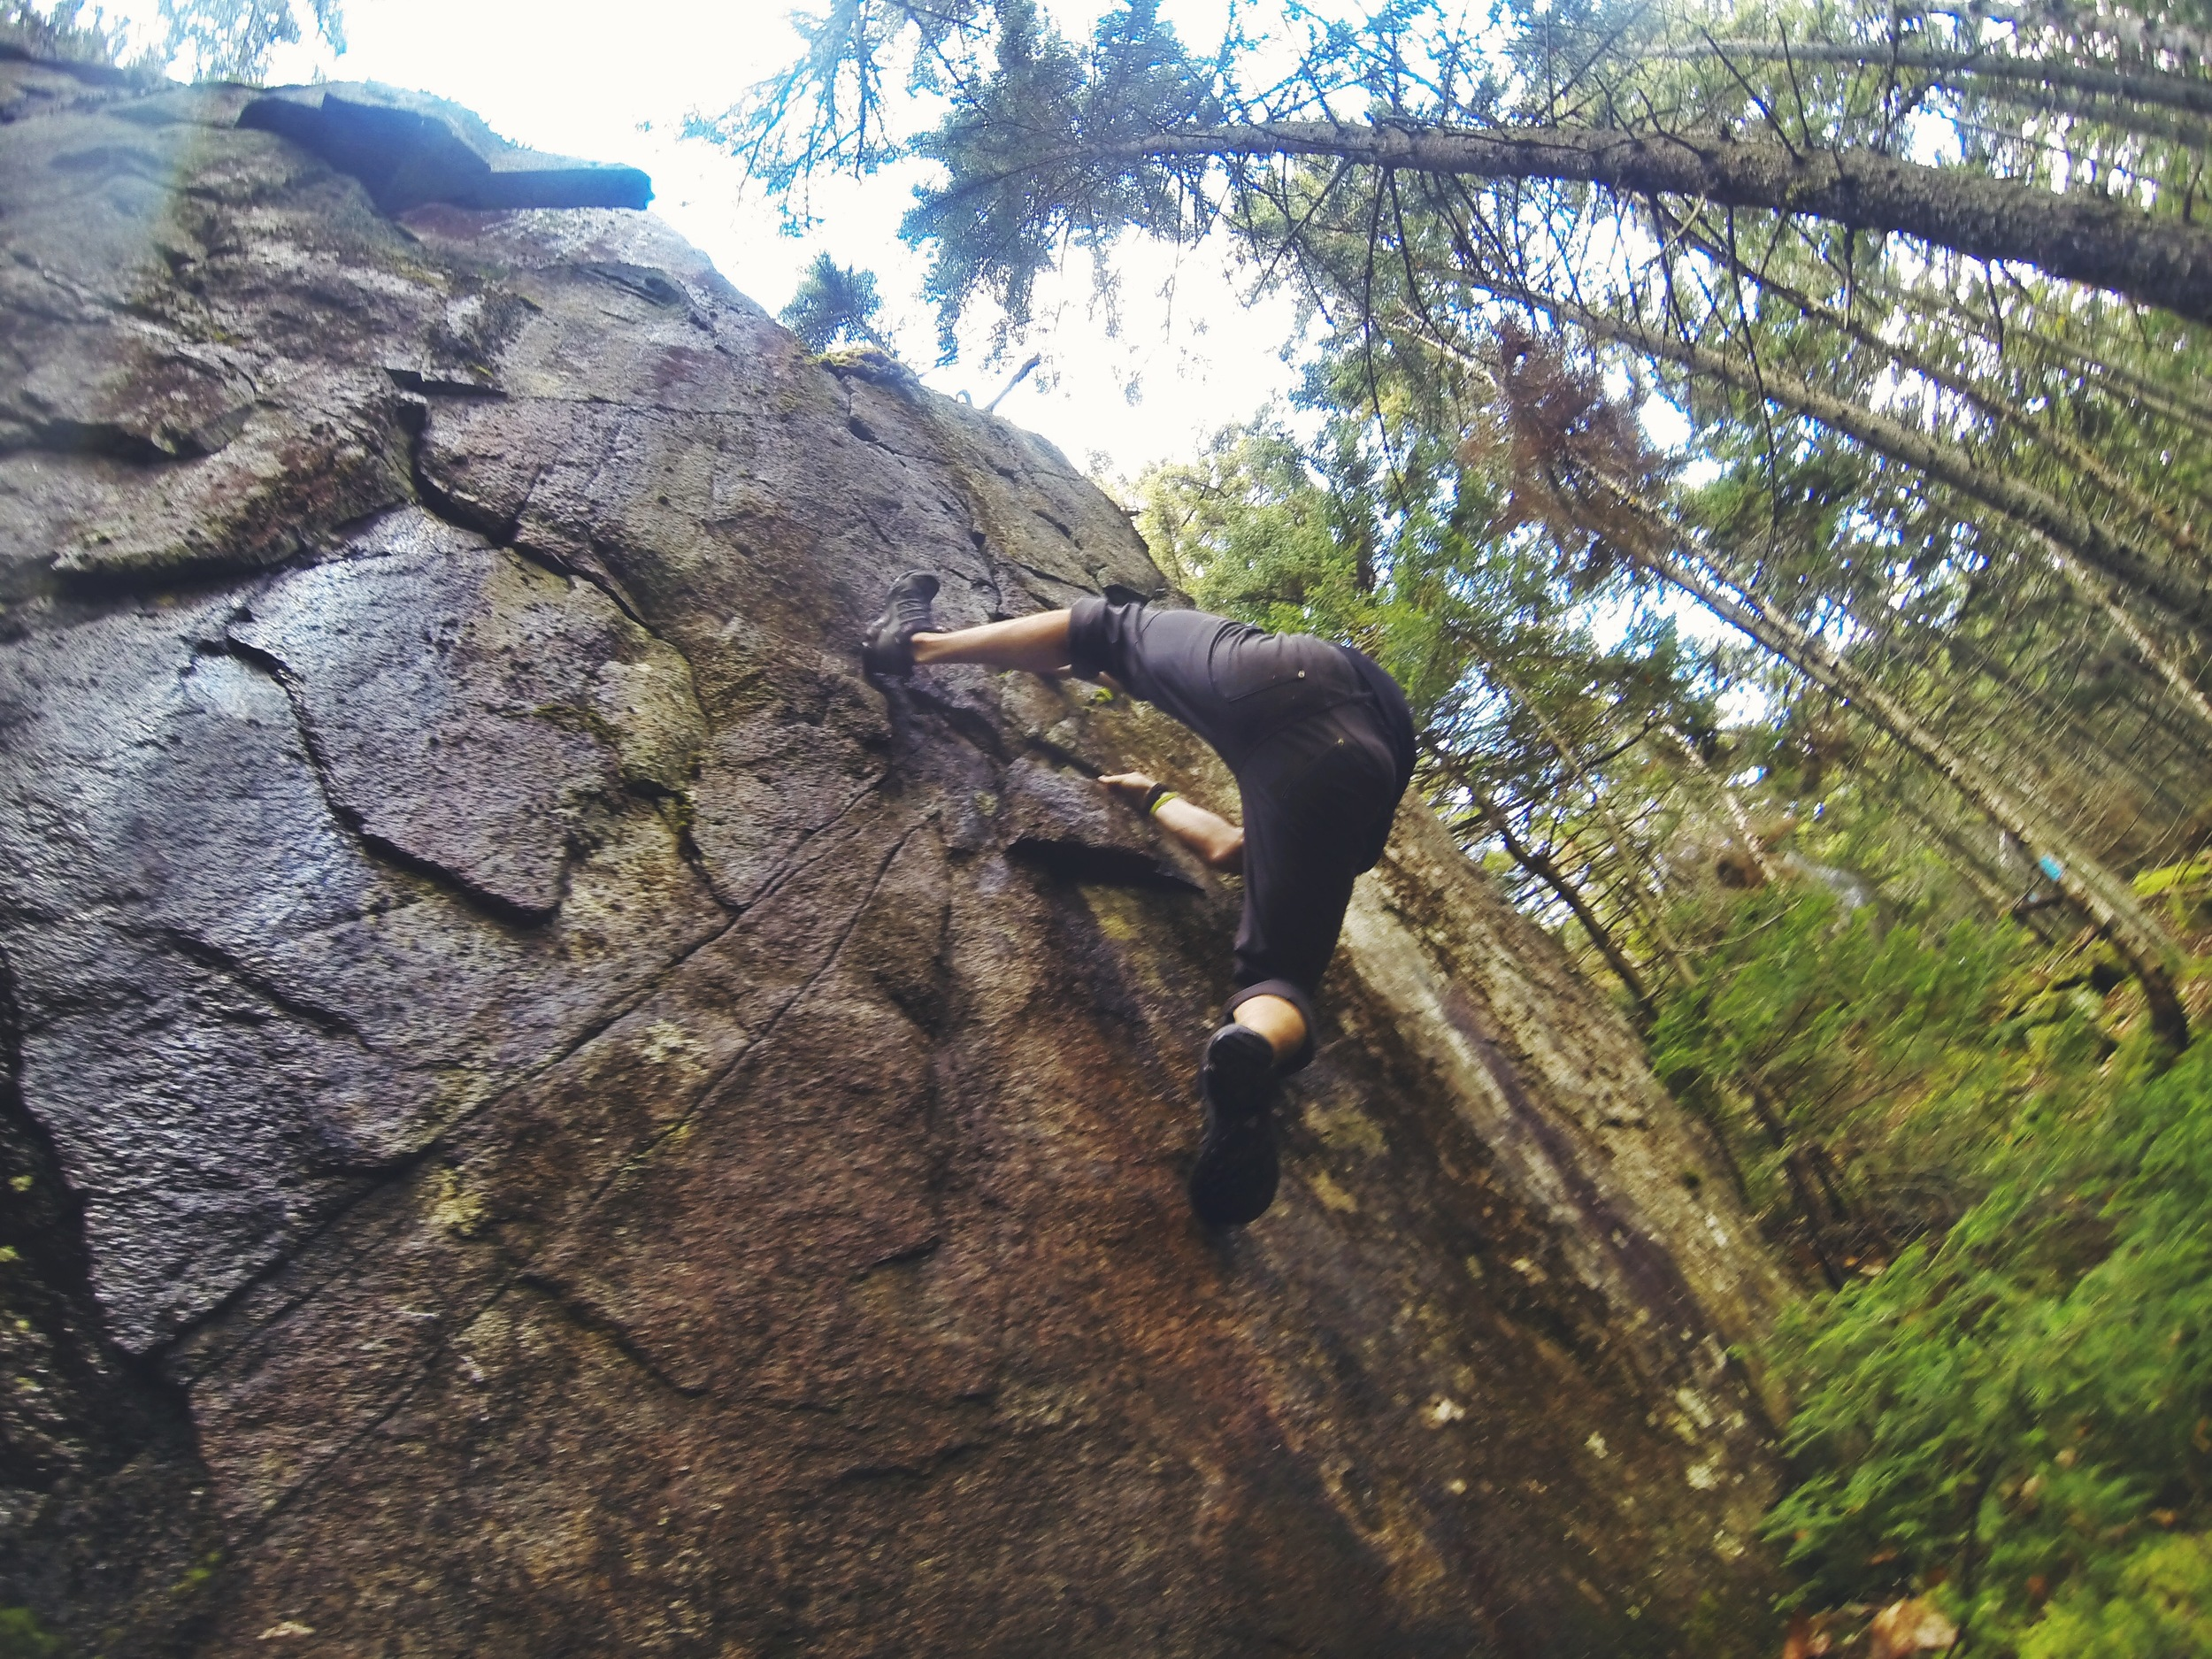 The trail is littered with massive boulders and rock faces perfect for bouldering, as a climber, Birch couldn't help but give them a shot even though most were too wet to climb.